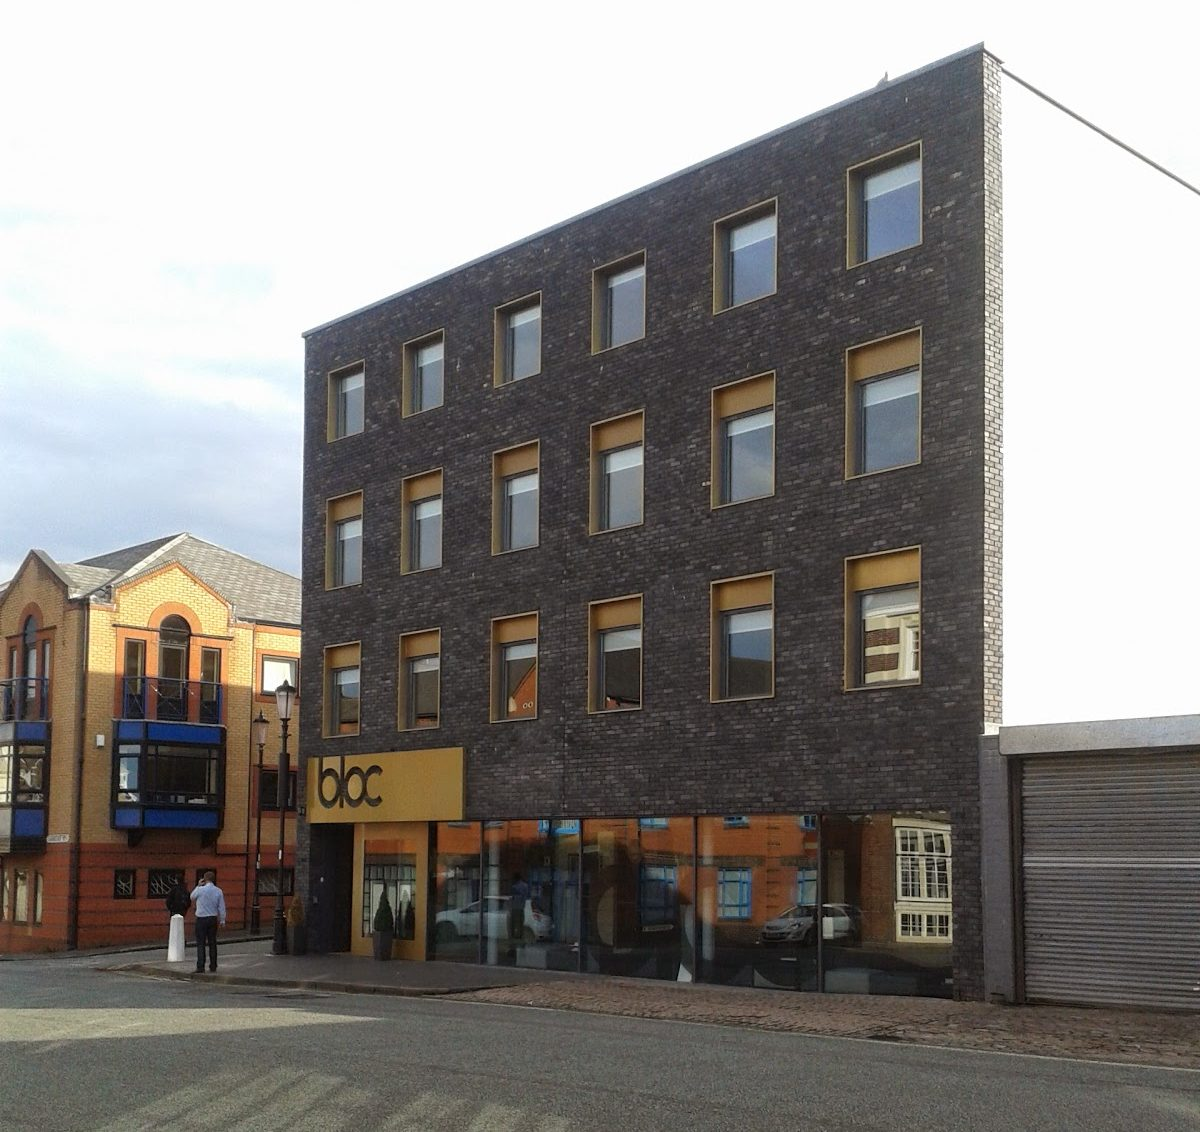 Hotels And Apartments In The Jewellery Quarter Jq Card Birmingham